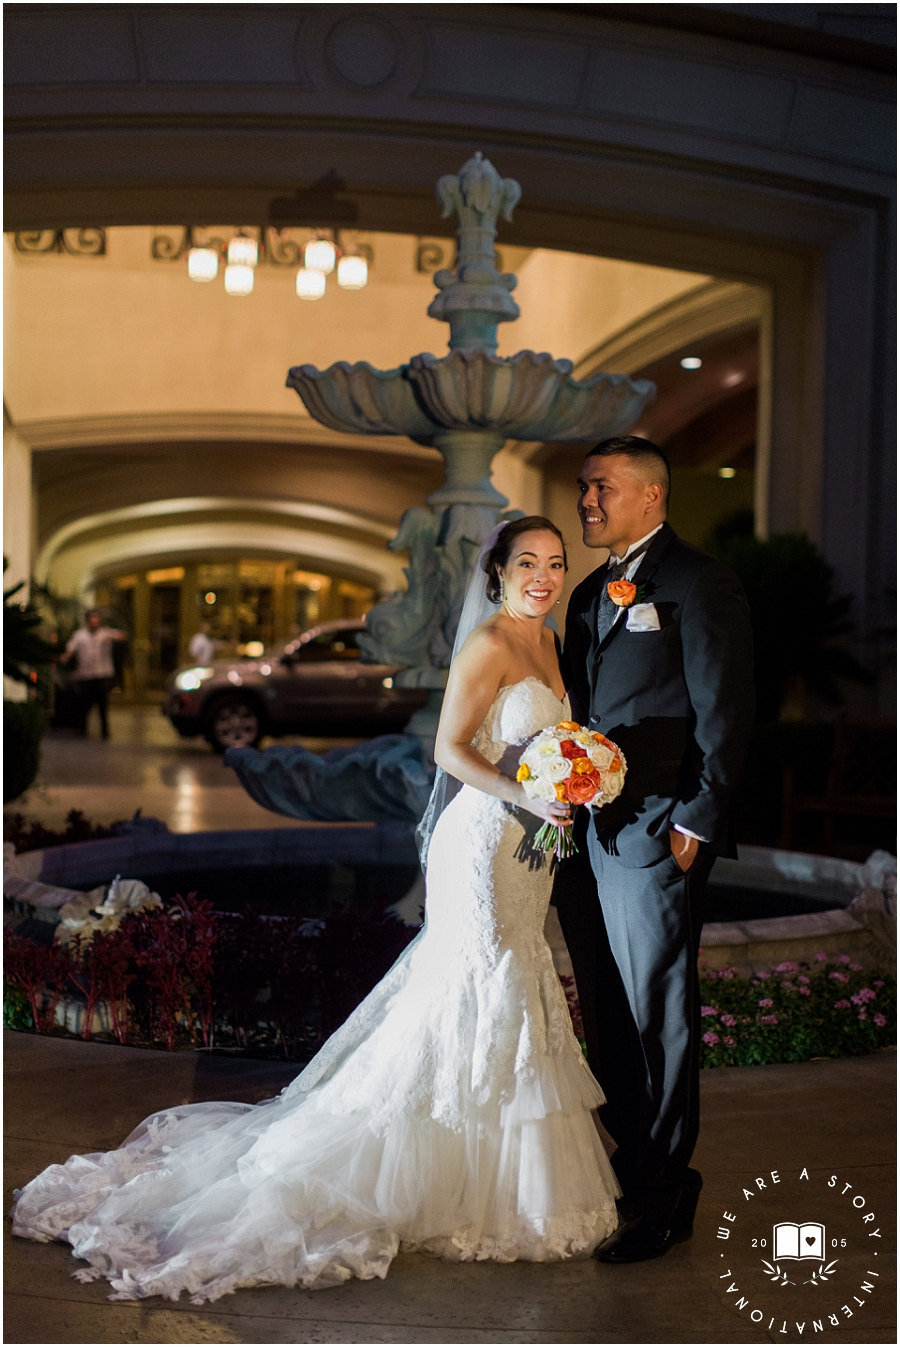 Four Seasons wedding photographer Las Vegas _ We Are A Story wedding photographer_2498.jpg